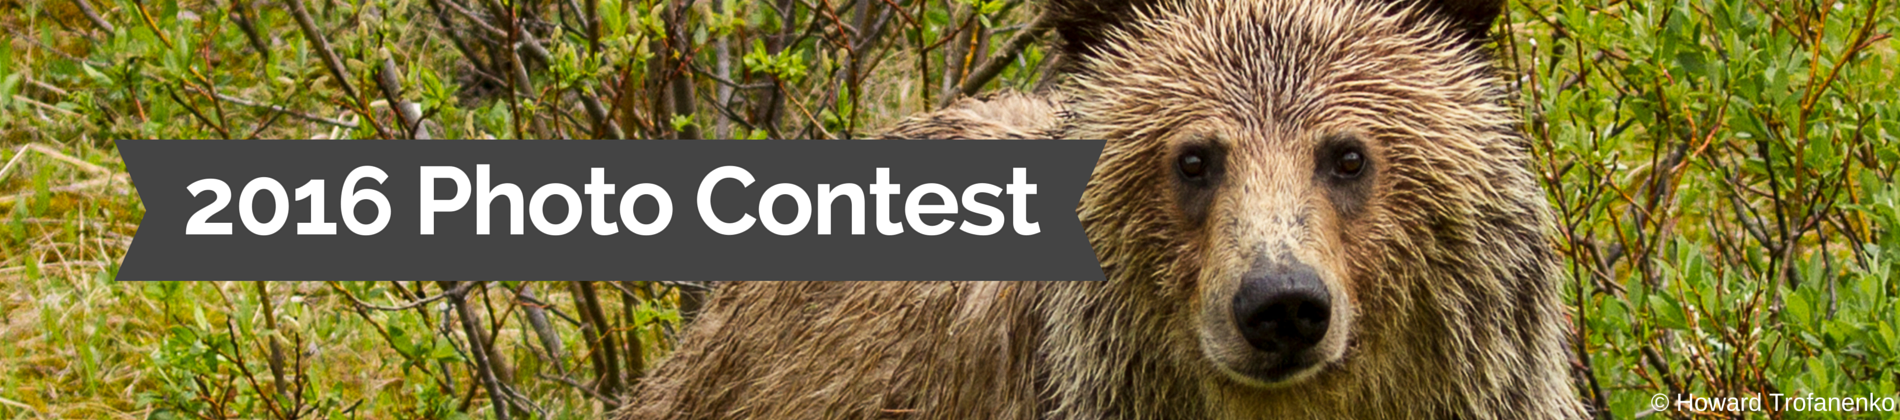 Web-Banner-Grizzly